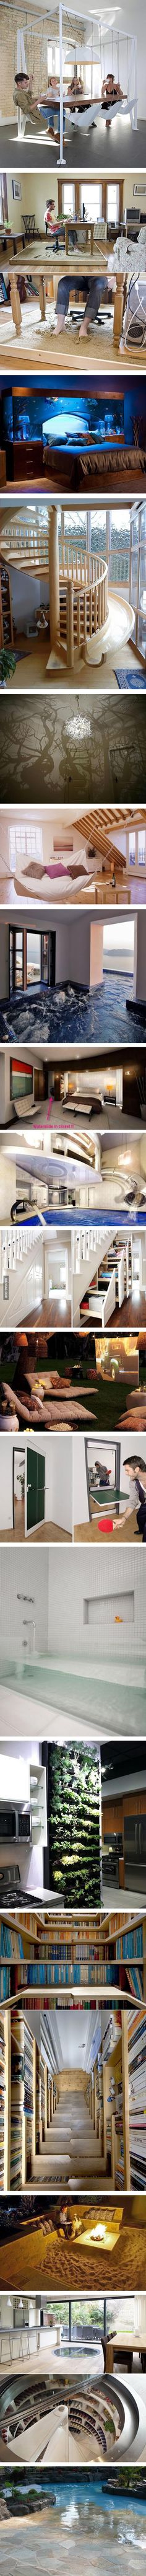 dude some of these are awesome. Waterslide in the closet could be the best I think though